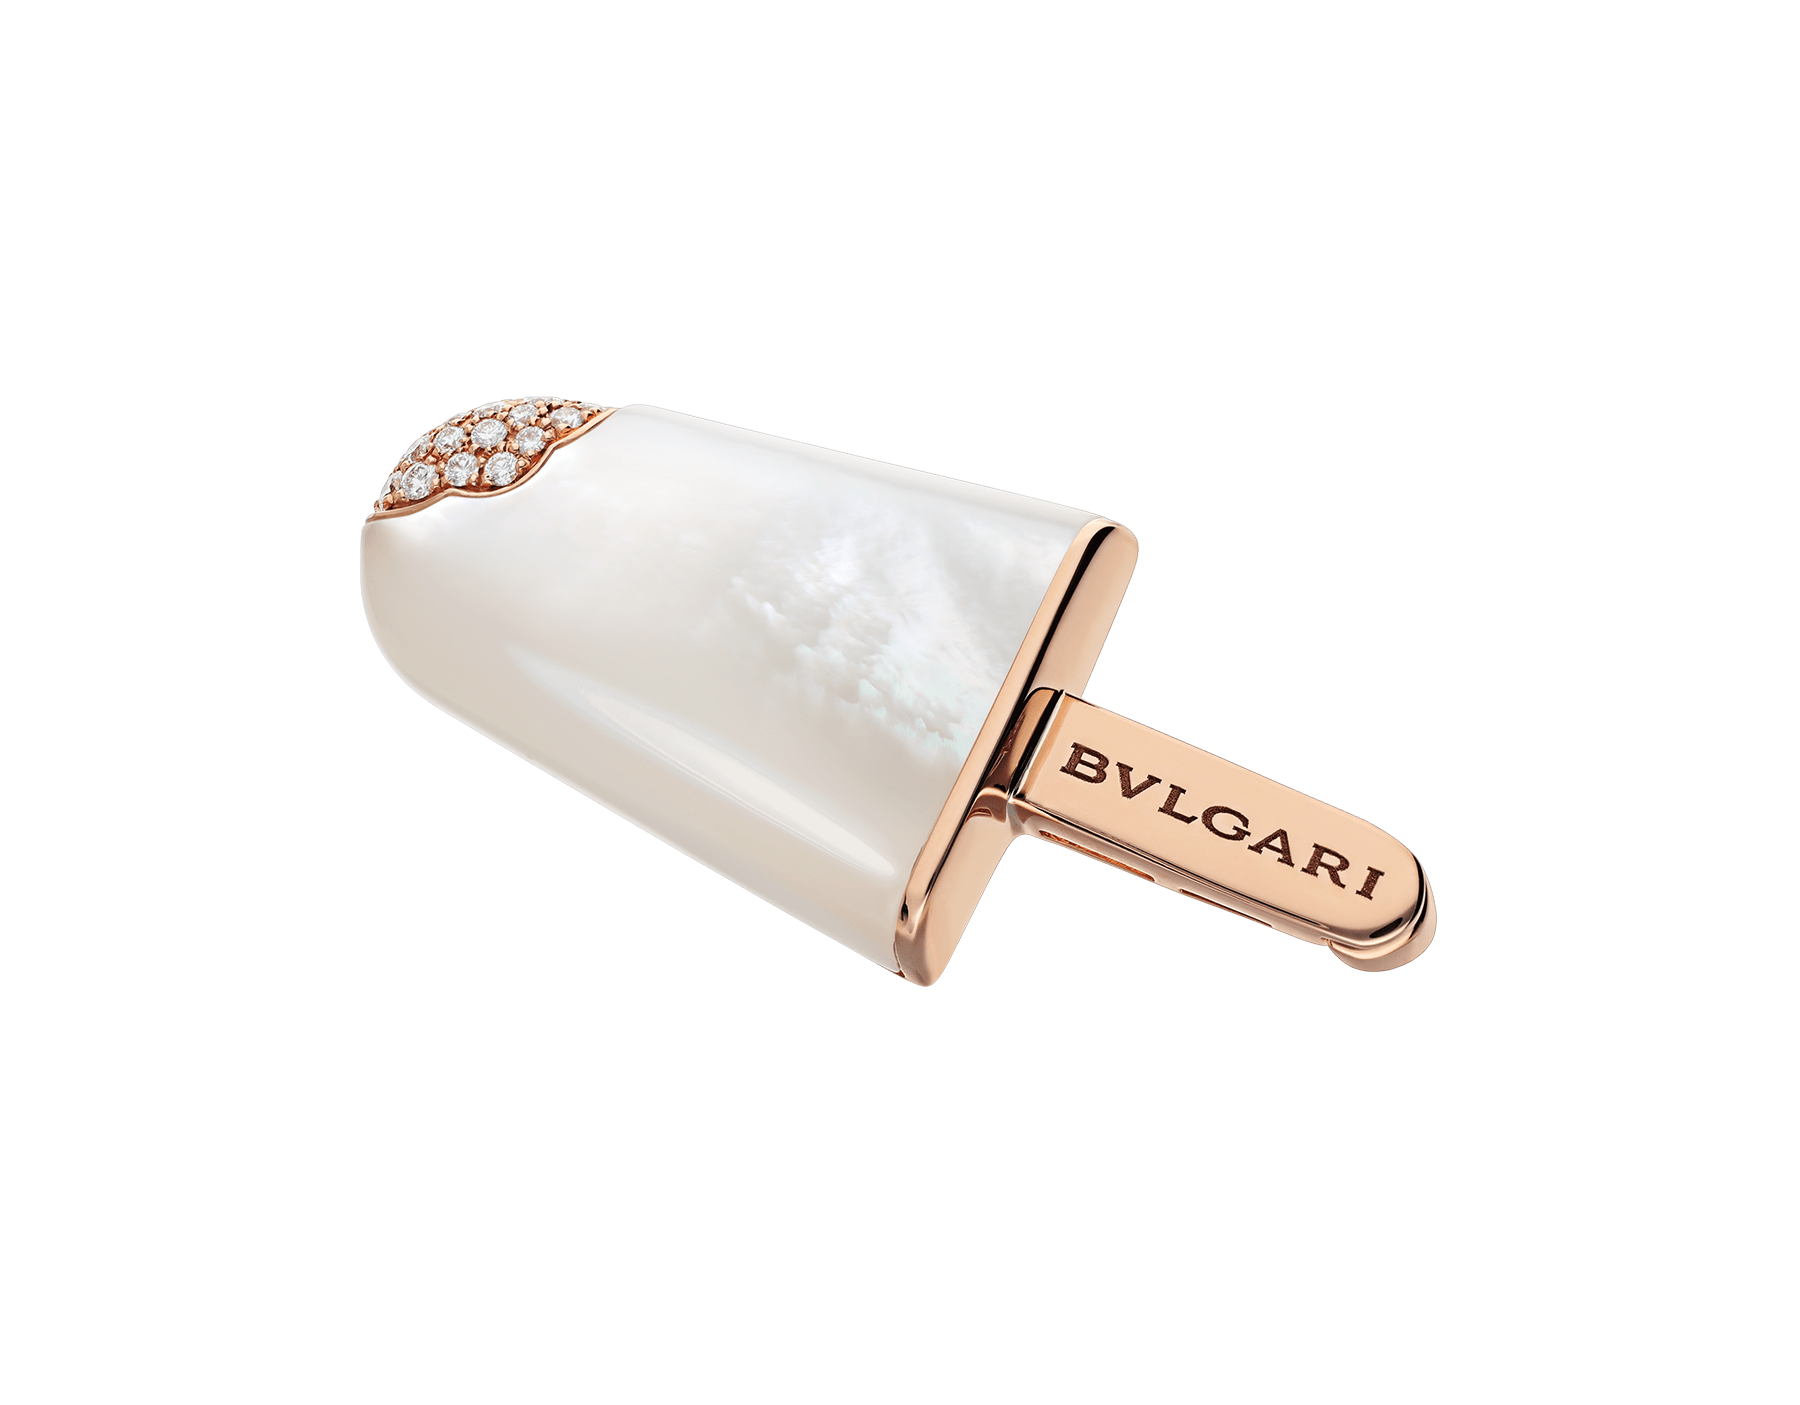 BVLGARI BVLGARI Gelati 18 kt rose gold brooch set with mother-of-pearl and pavé diamonds 355278 image 1